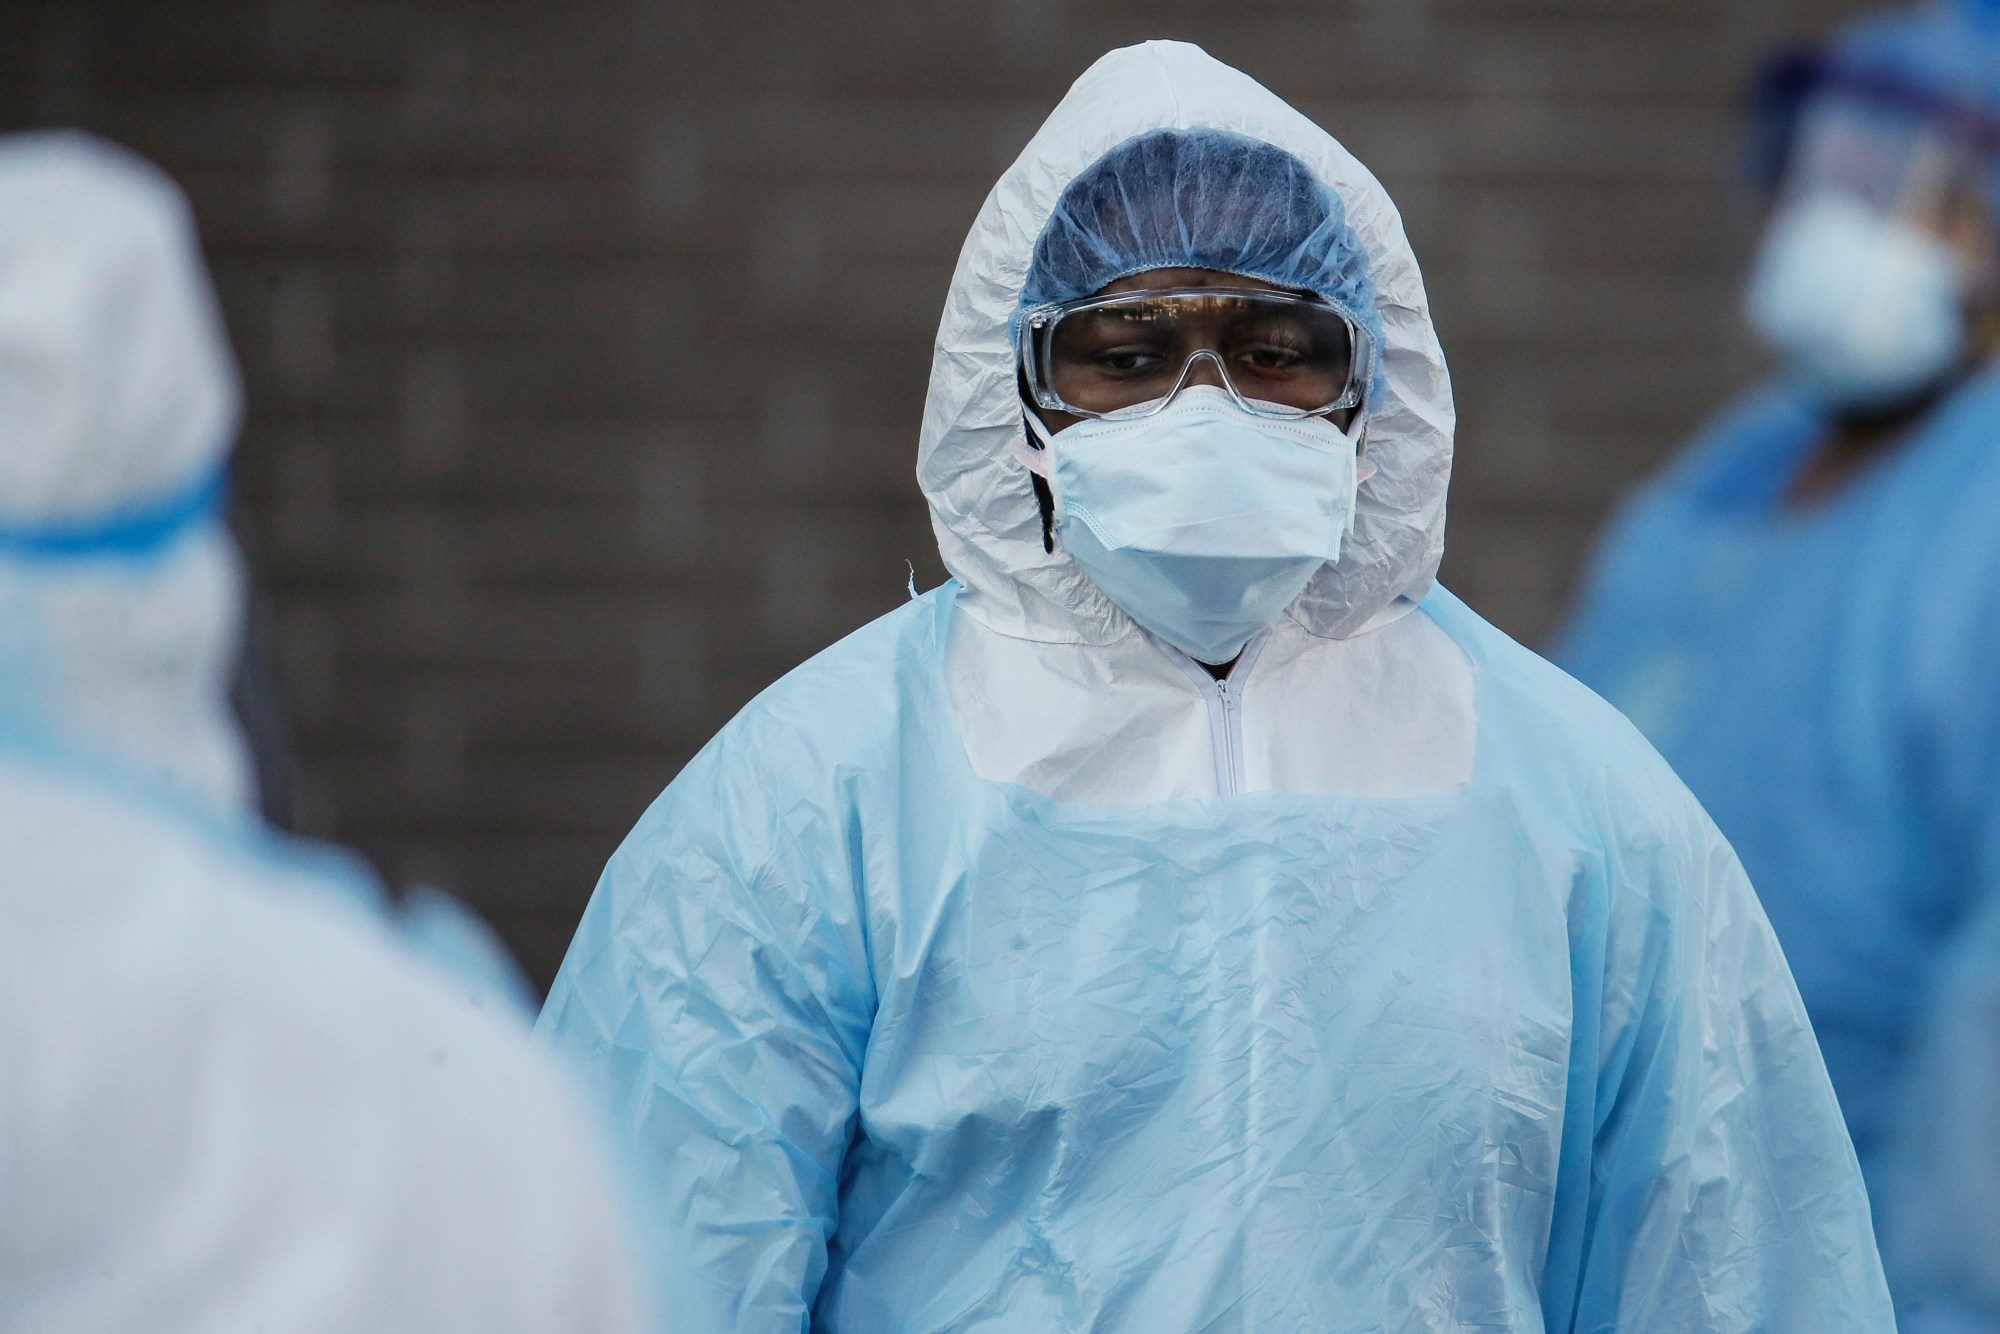 A medical worker wearing personal protective equipment pauses after wheeling a body to a refrigerated trailer serving as a makeshift morgue at Wyckoff Heights Medical Center on April 6, 2020, in New York. (AP Photo/John Minchillo)